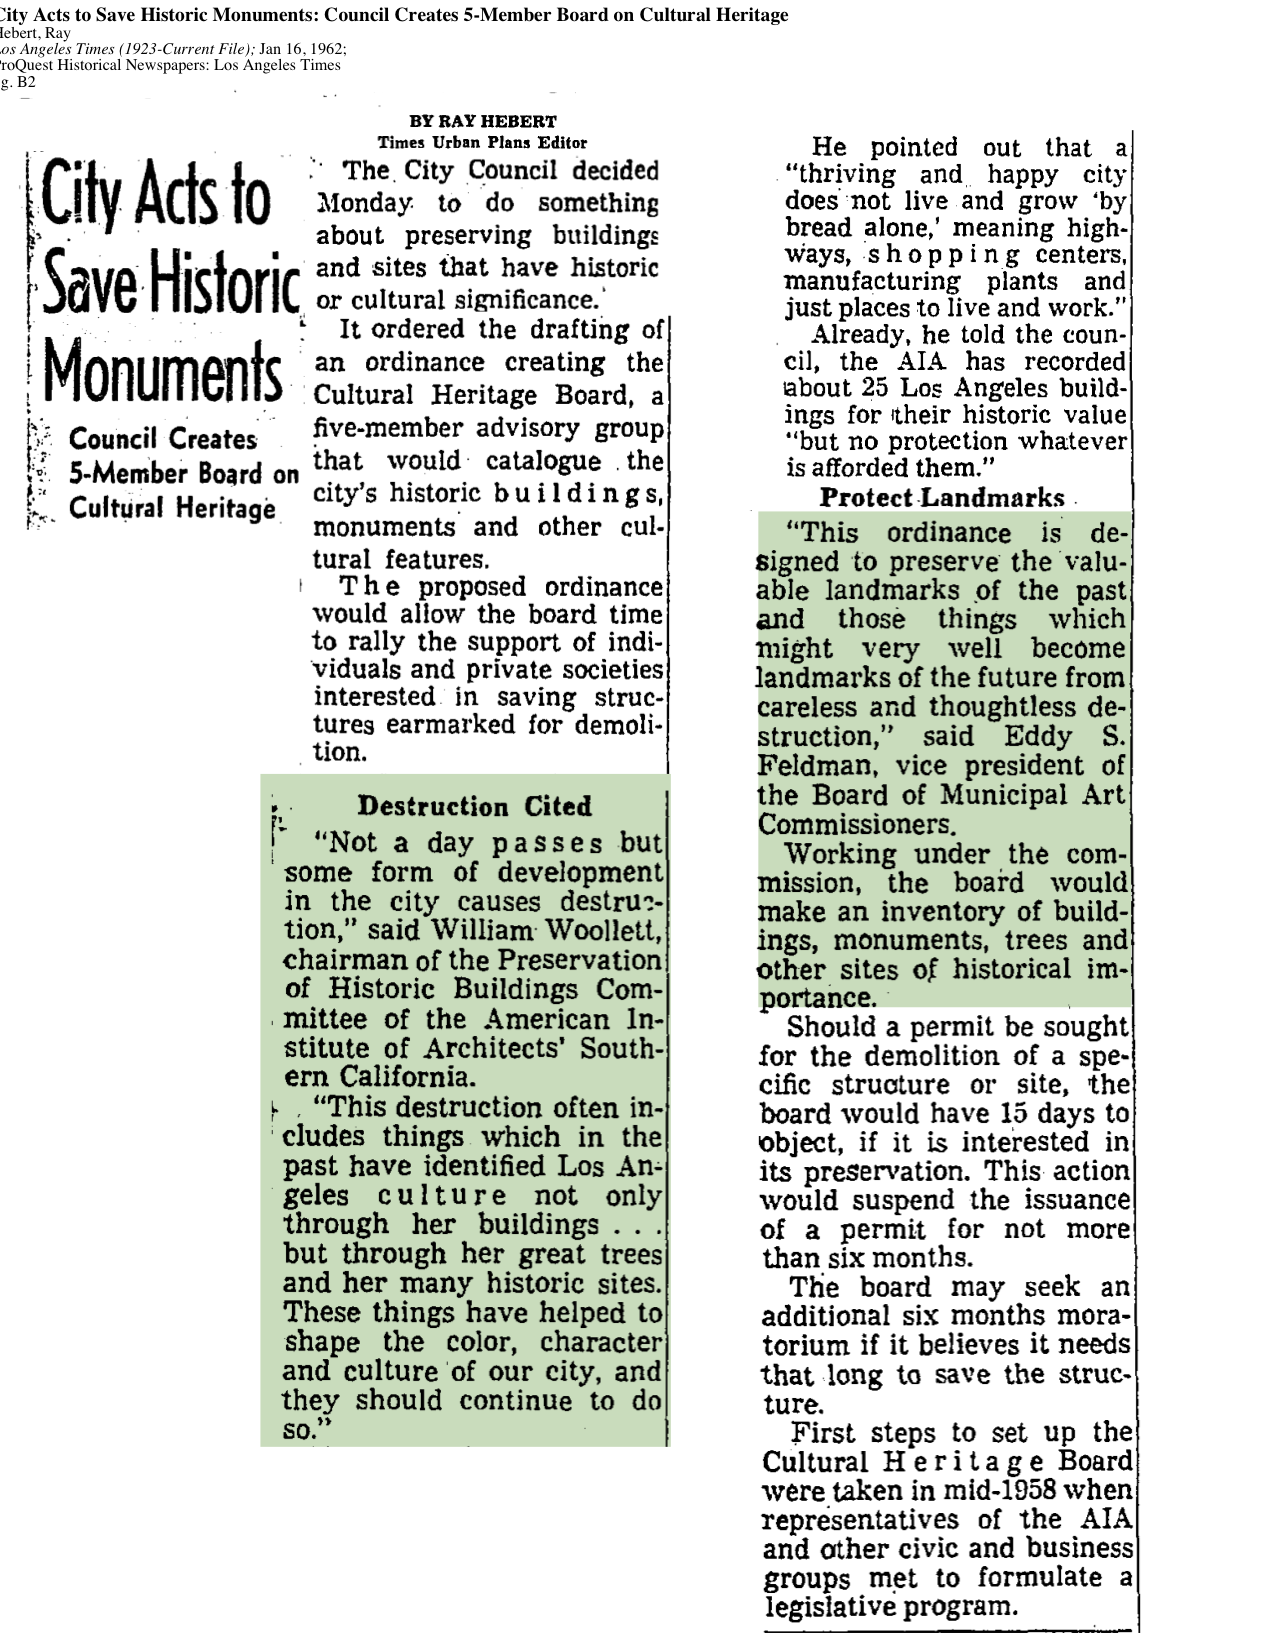 1962-City Acts To Save Historic Monuments